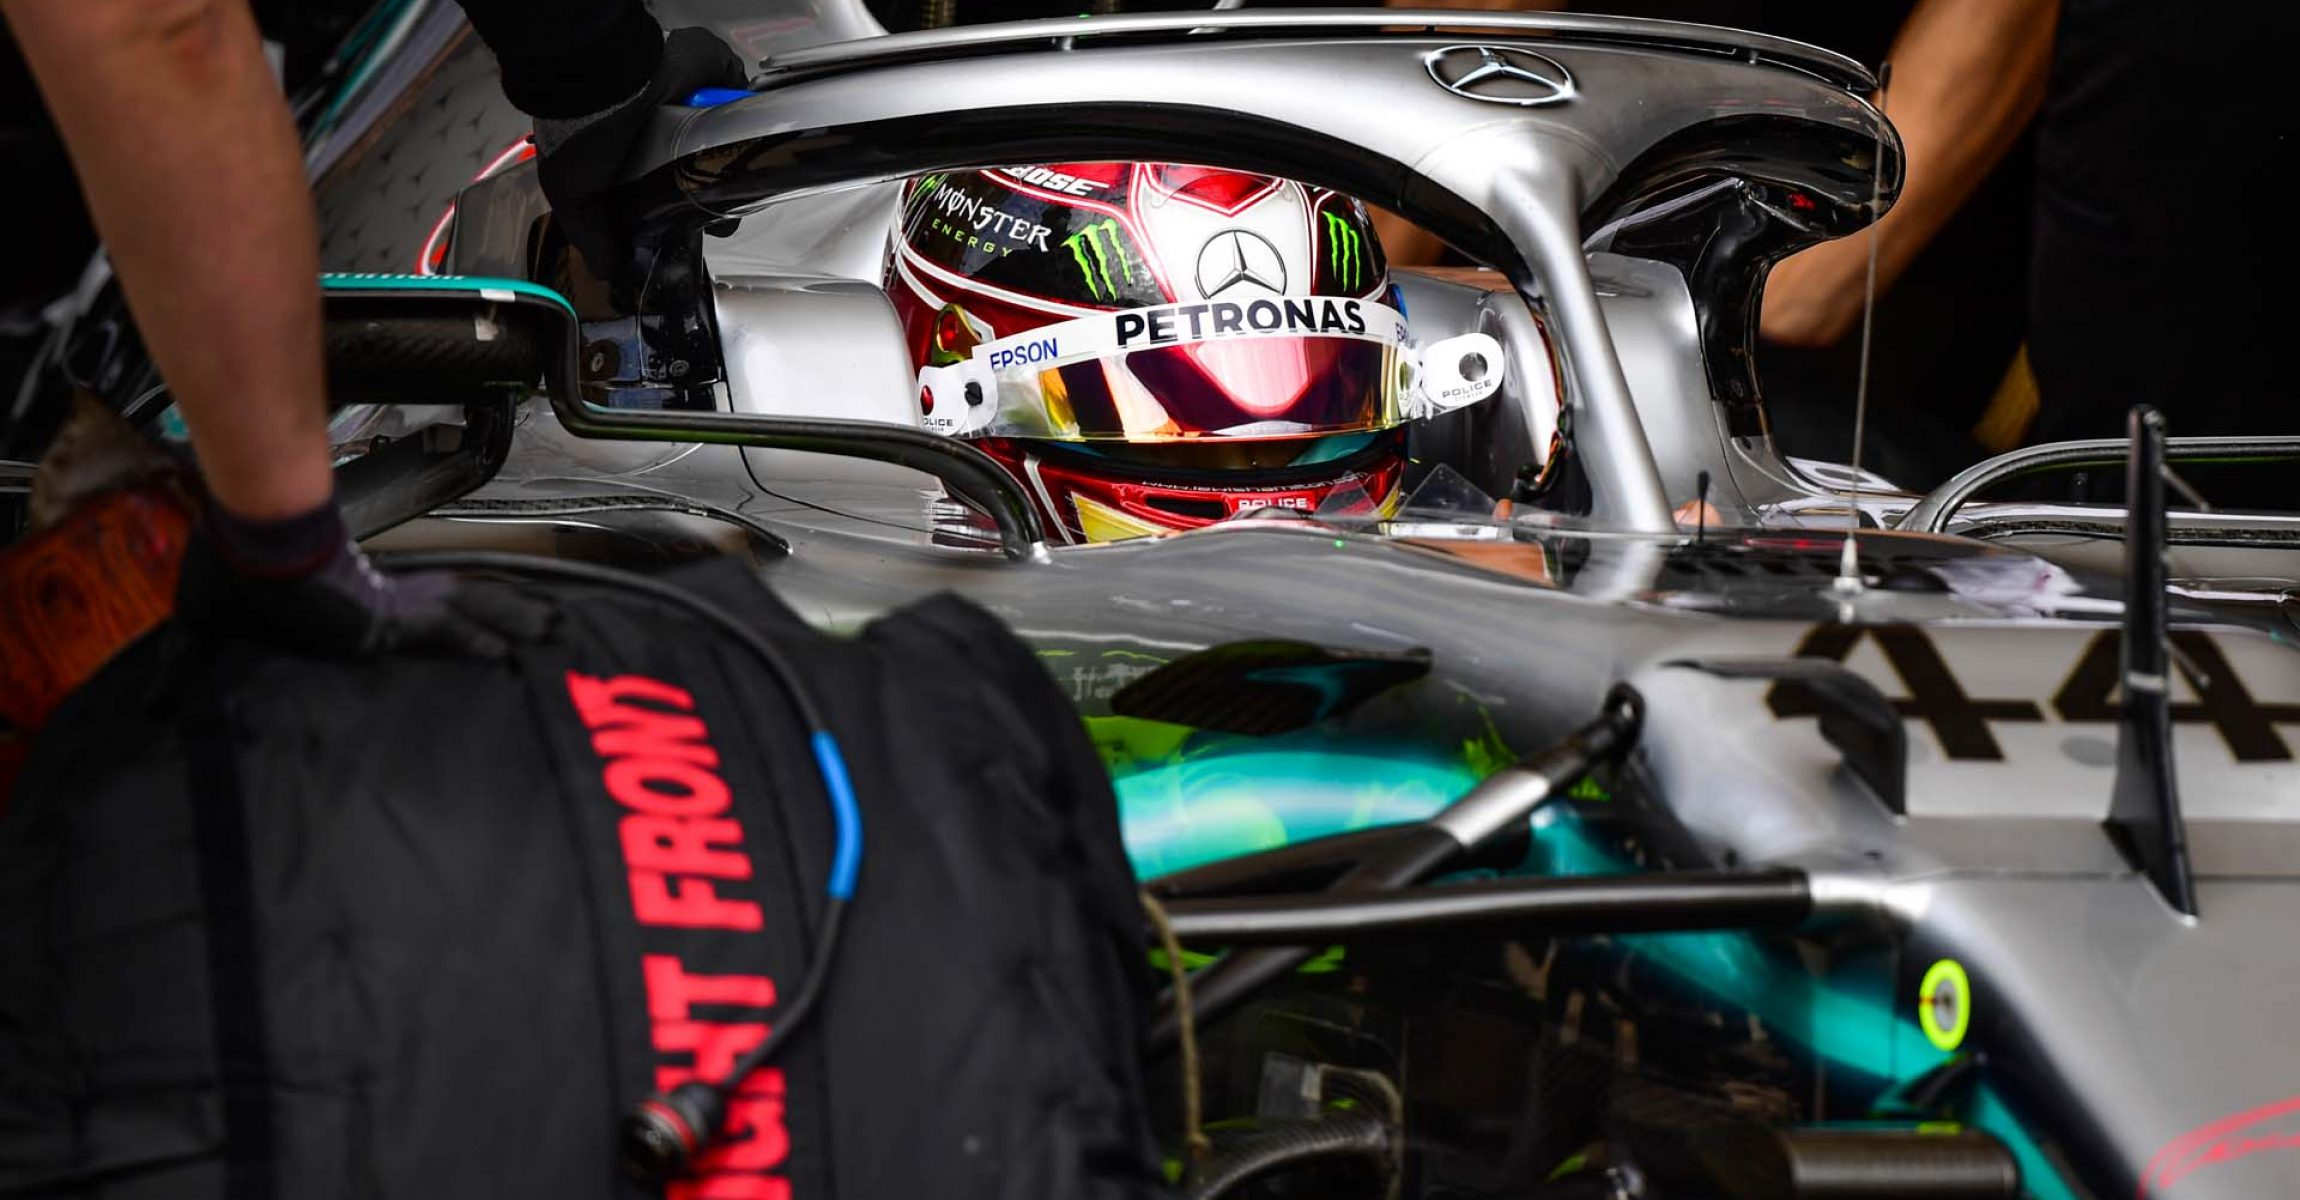 2019 United States Grand Prix, Friday - LAT Images Lewis Hamilton Mercedes